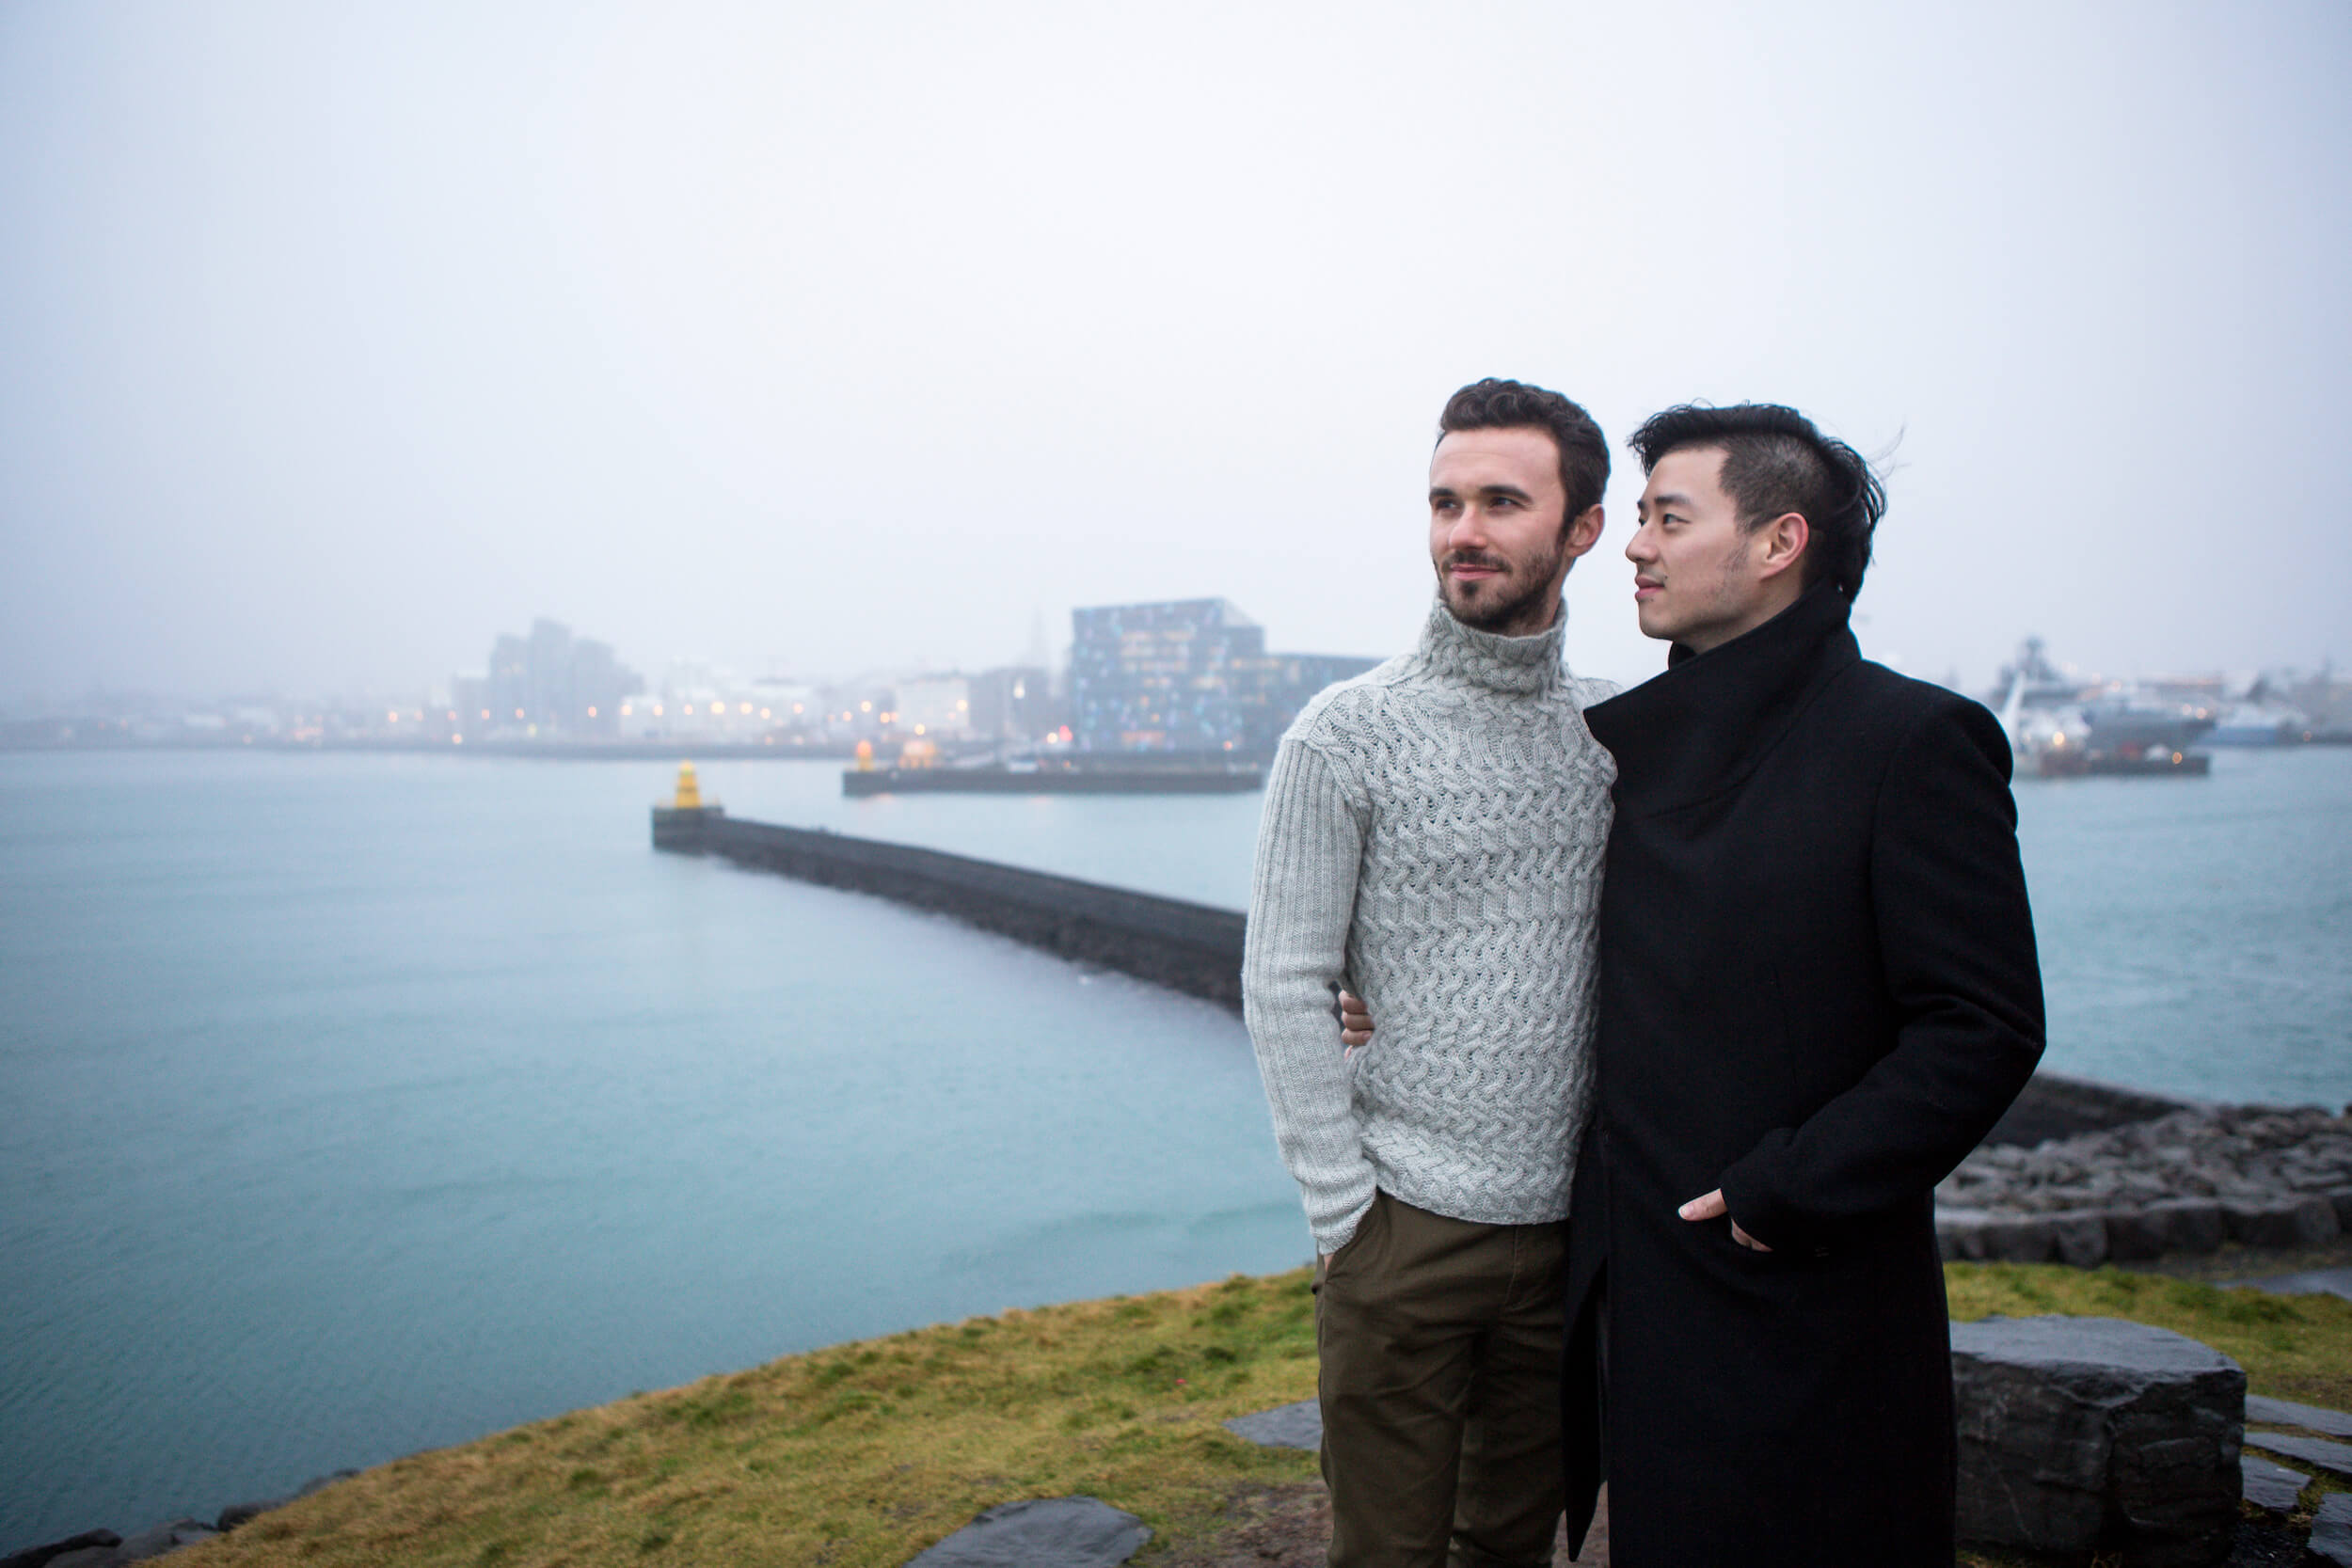 A male couple hold each other looking over the harbour in Reykjavik, Iceland.